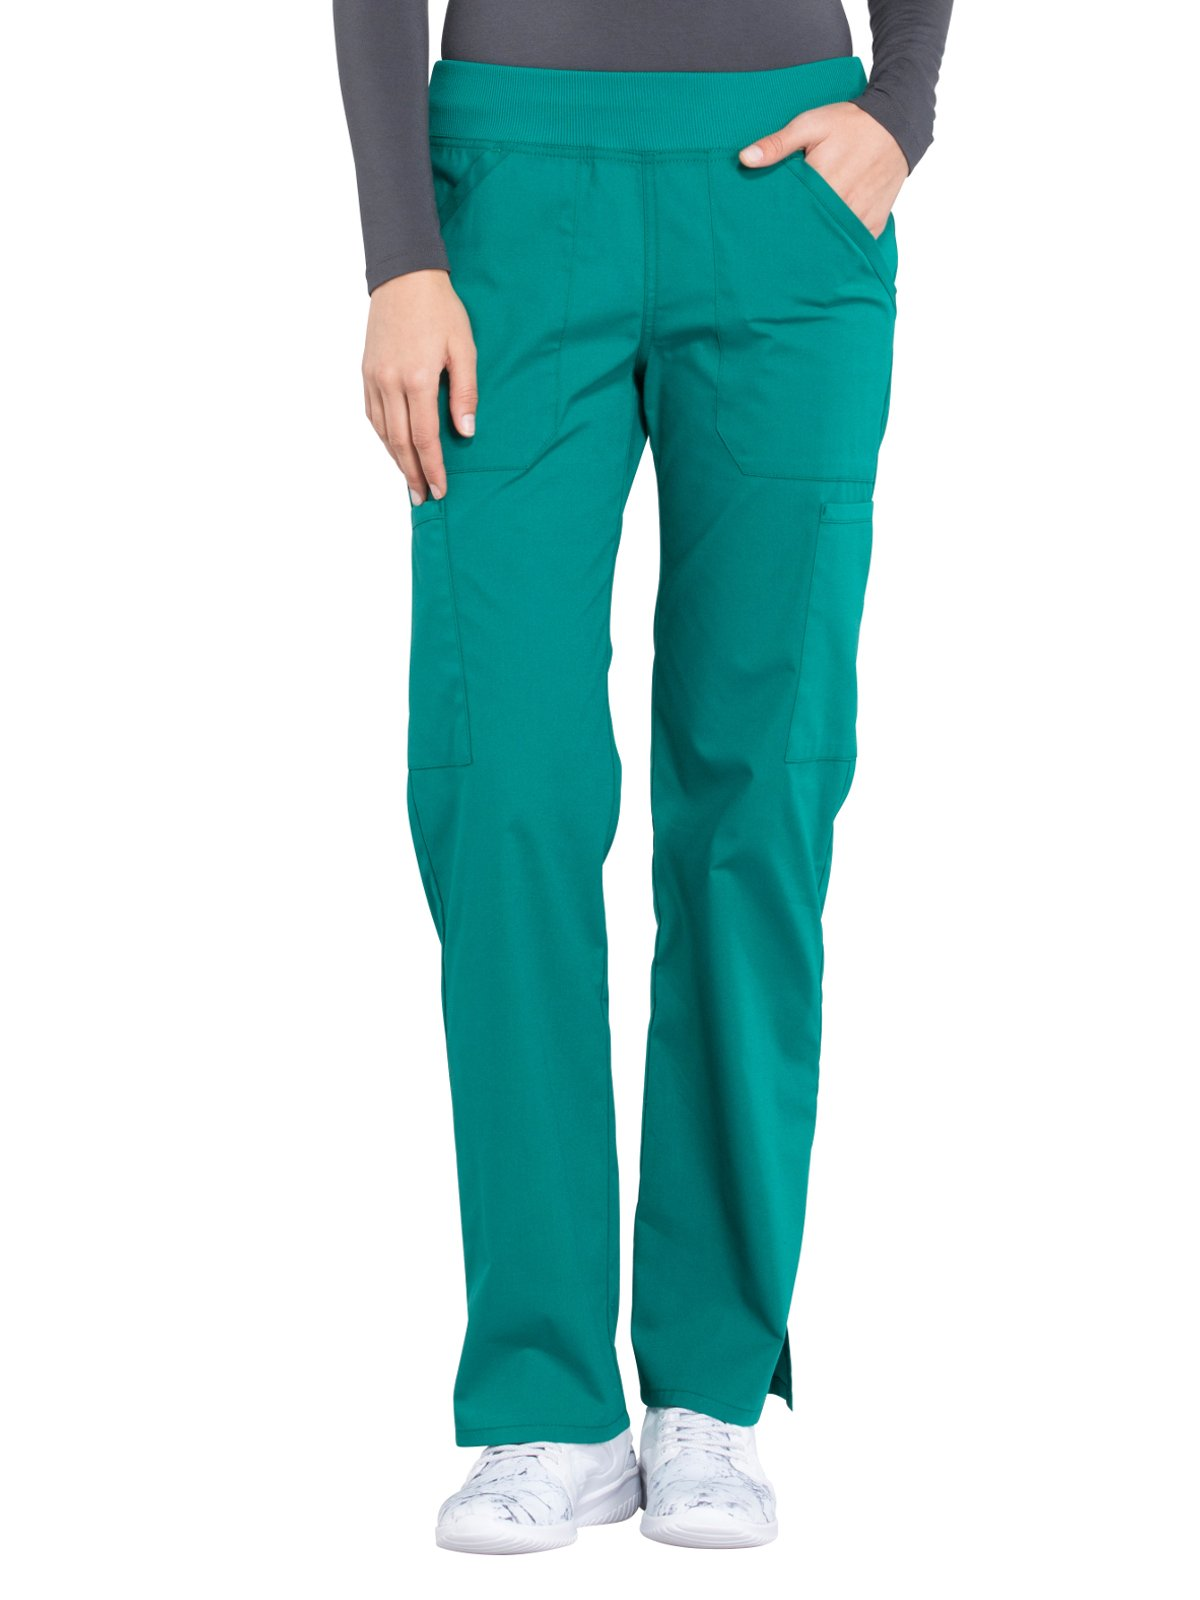 Cherokee Professionals by Workwear Women's Elastic Waistband Pull On Cargo Scrub Pant Small Tall Hunter Green